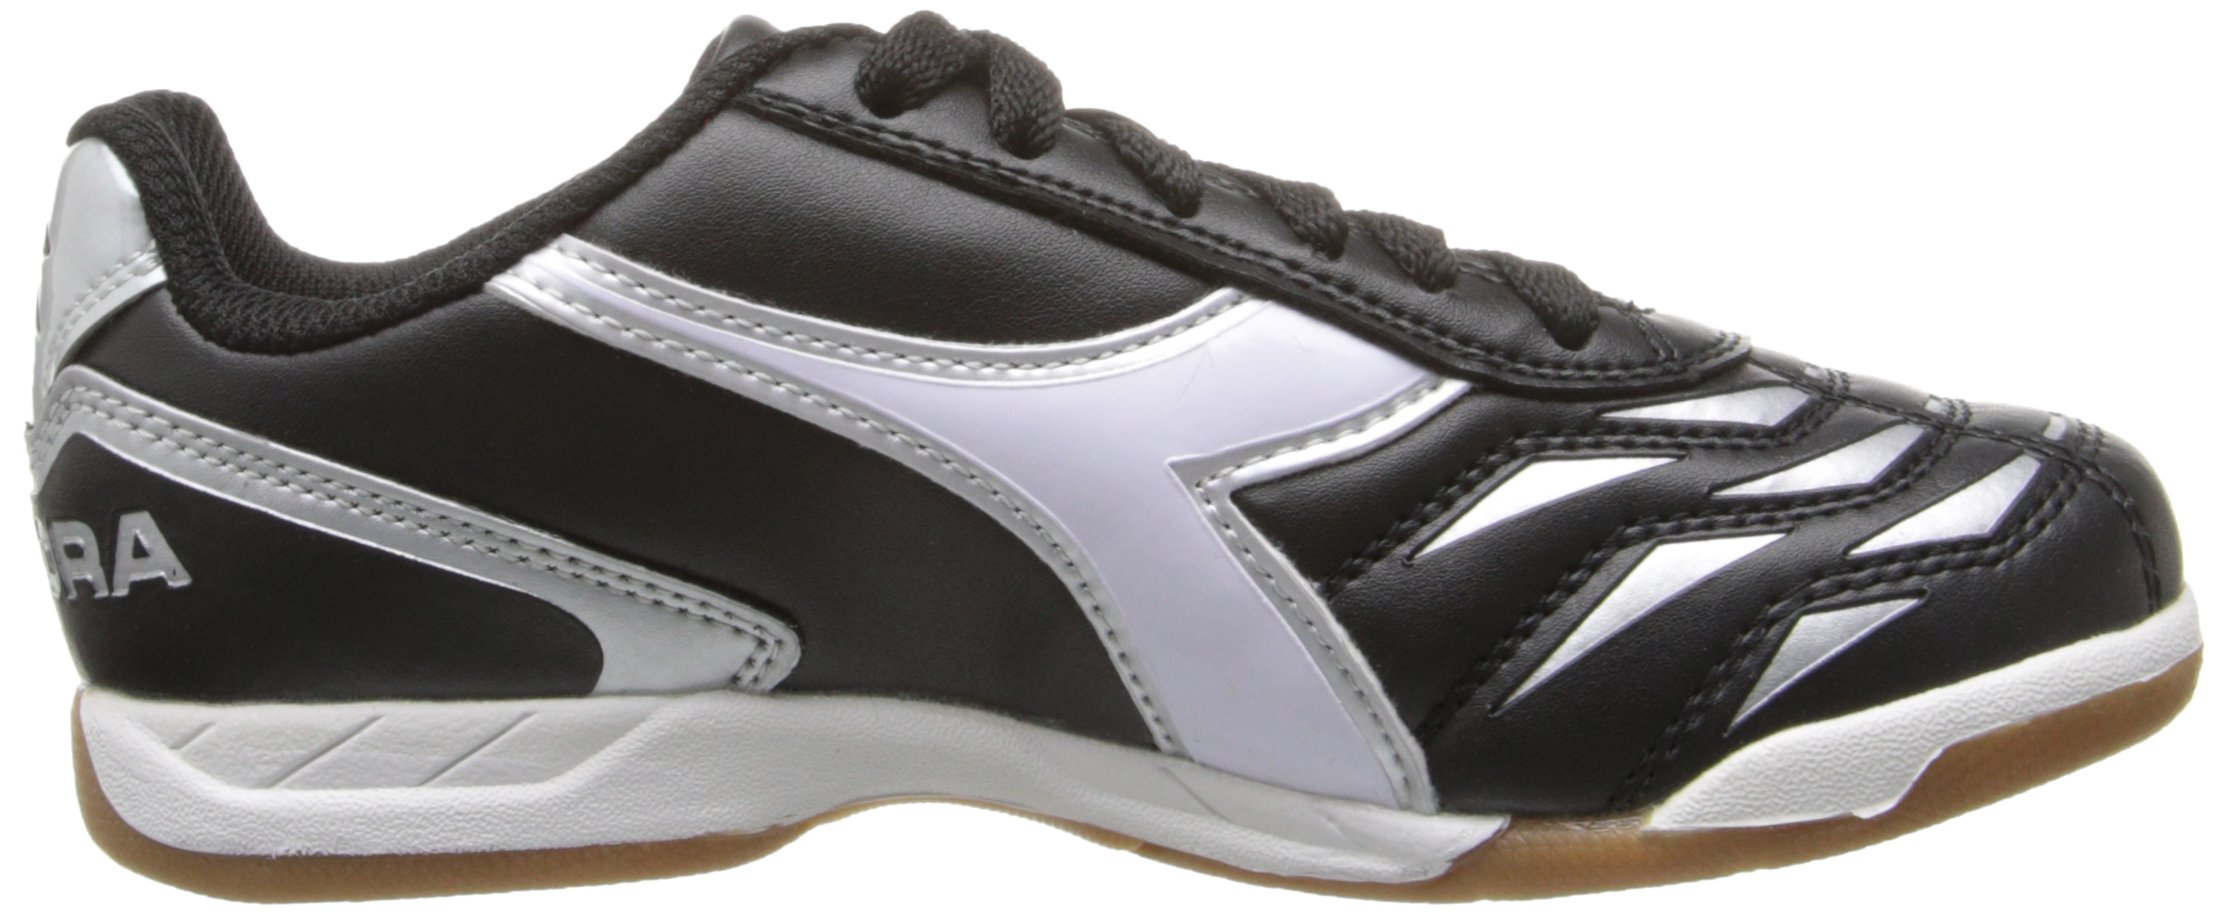 Diadora Capitano ID JR Indoor Soccer Shoe, Black/White, 3.5 M US Big Kid by Diadora (Image #6)